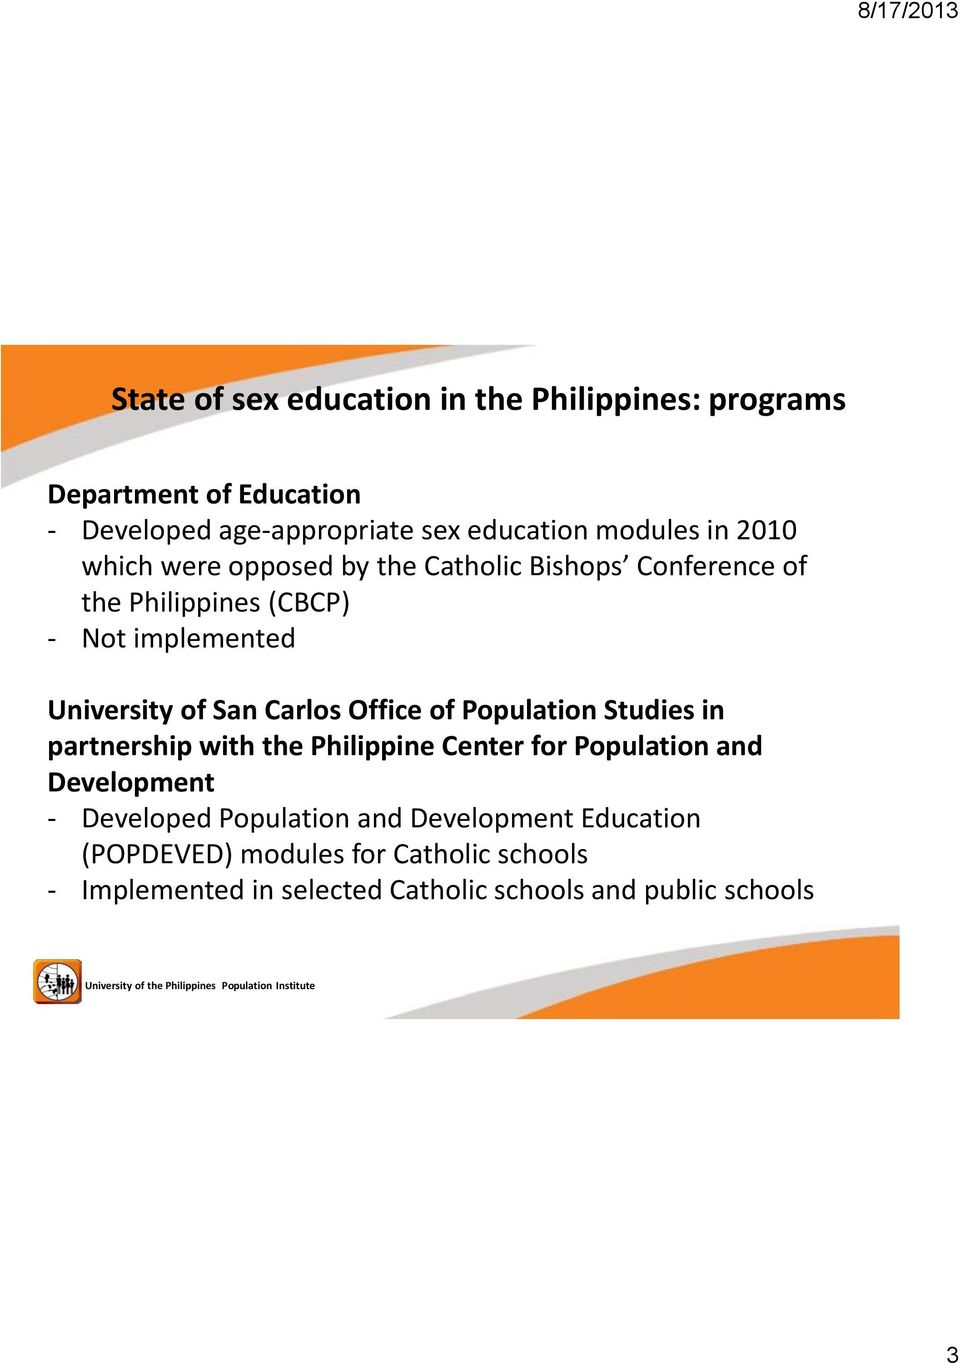 Research paper services about teenage pregnancy in the philippines pdf